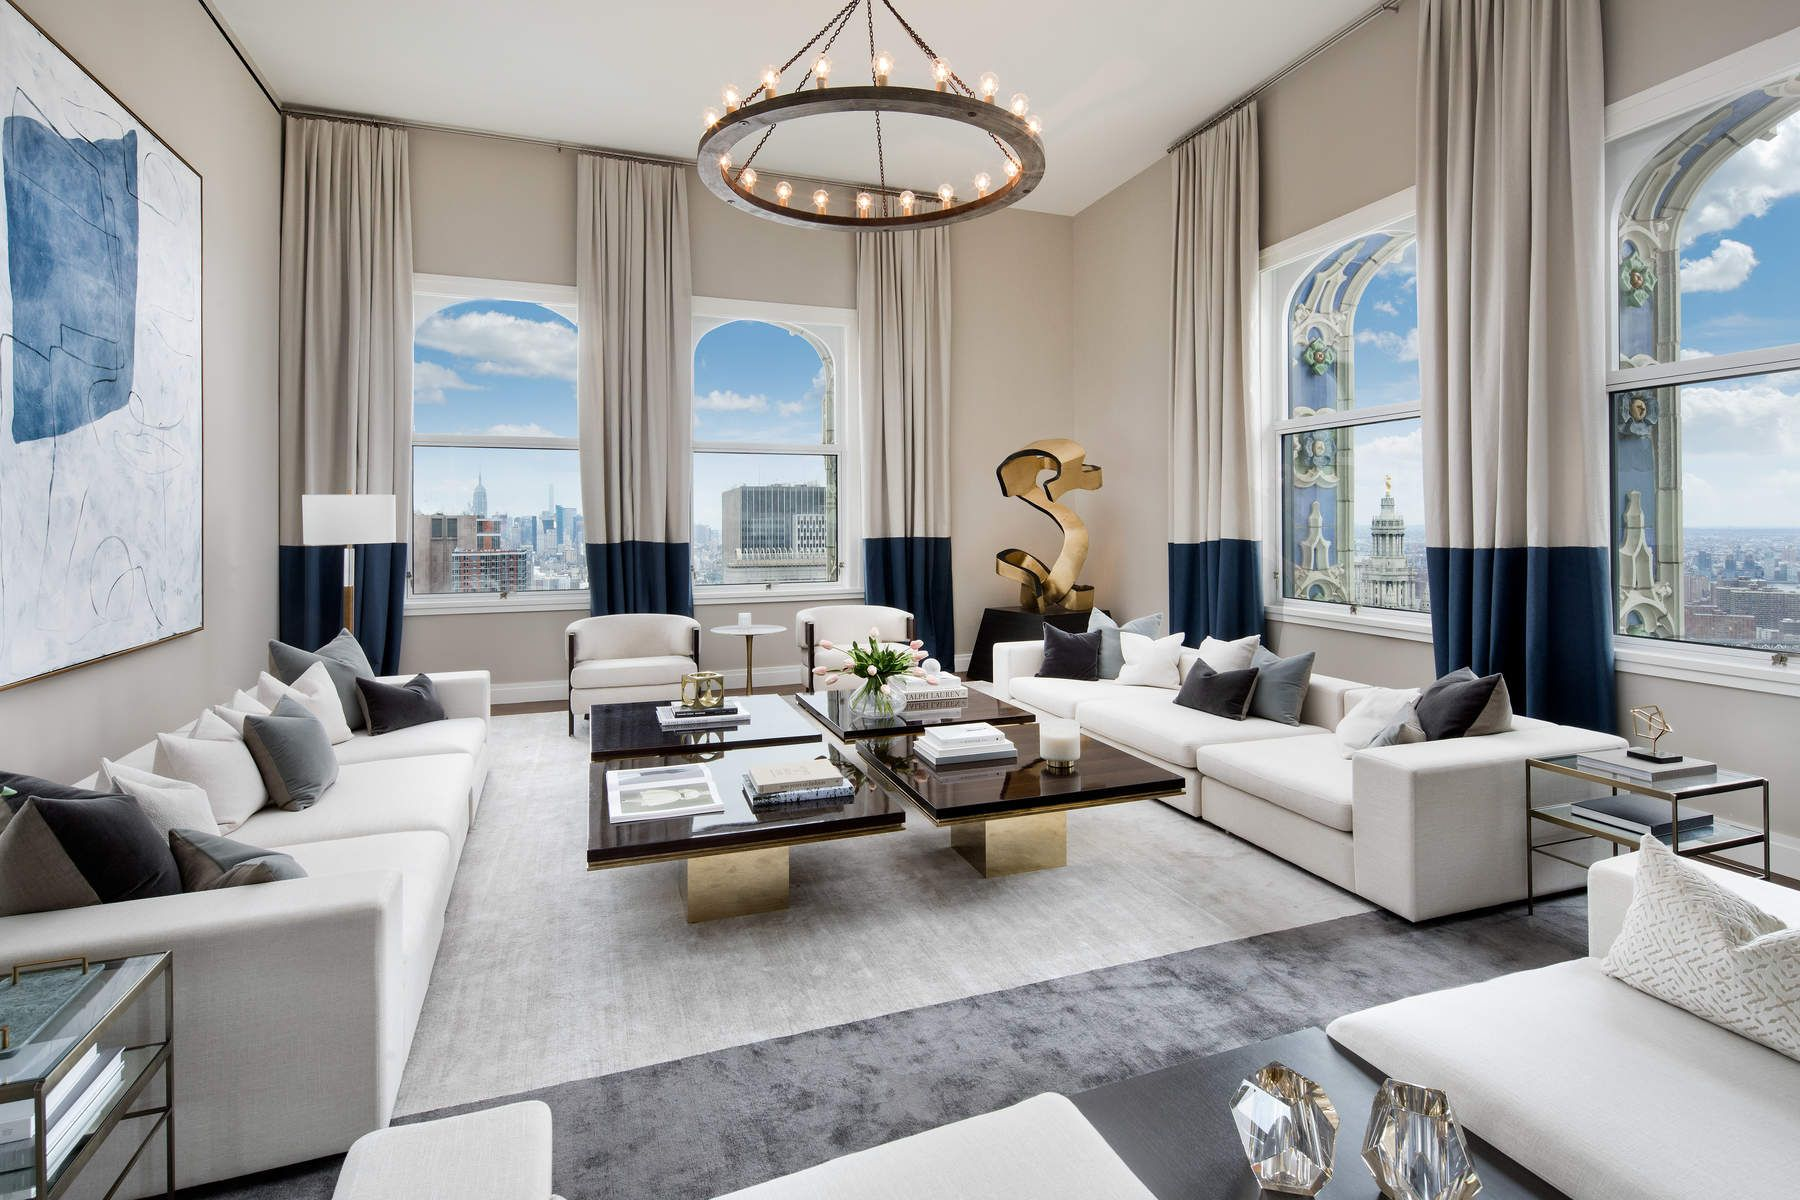 Condominium for Sale at The Woolworth Tower Residences, 2 Park Place 40-AB 2 Park Place New York, New York 10007 United States